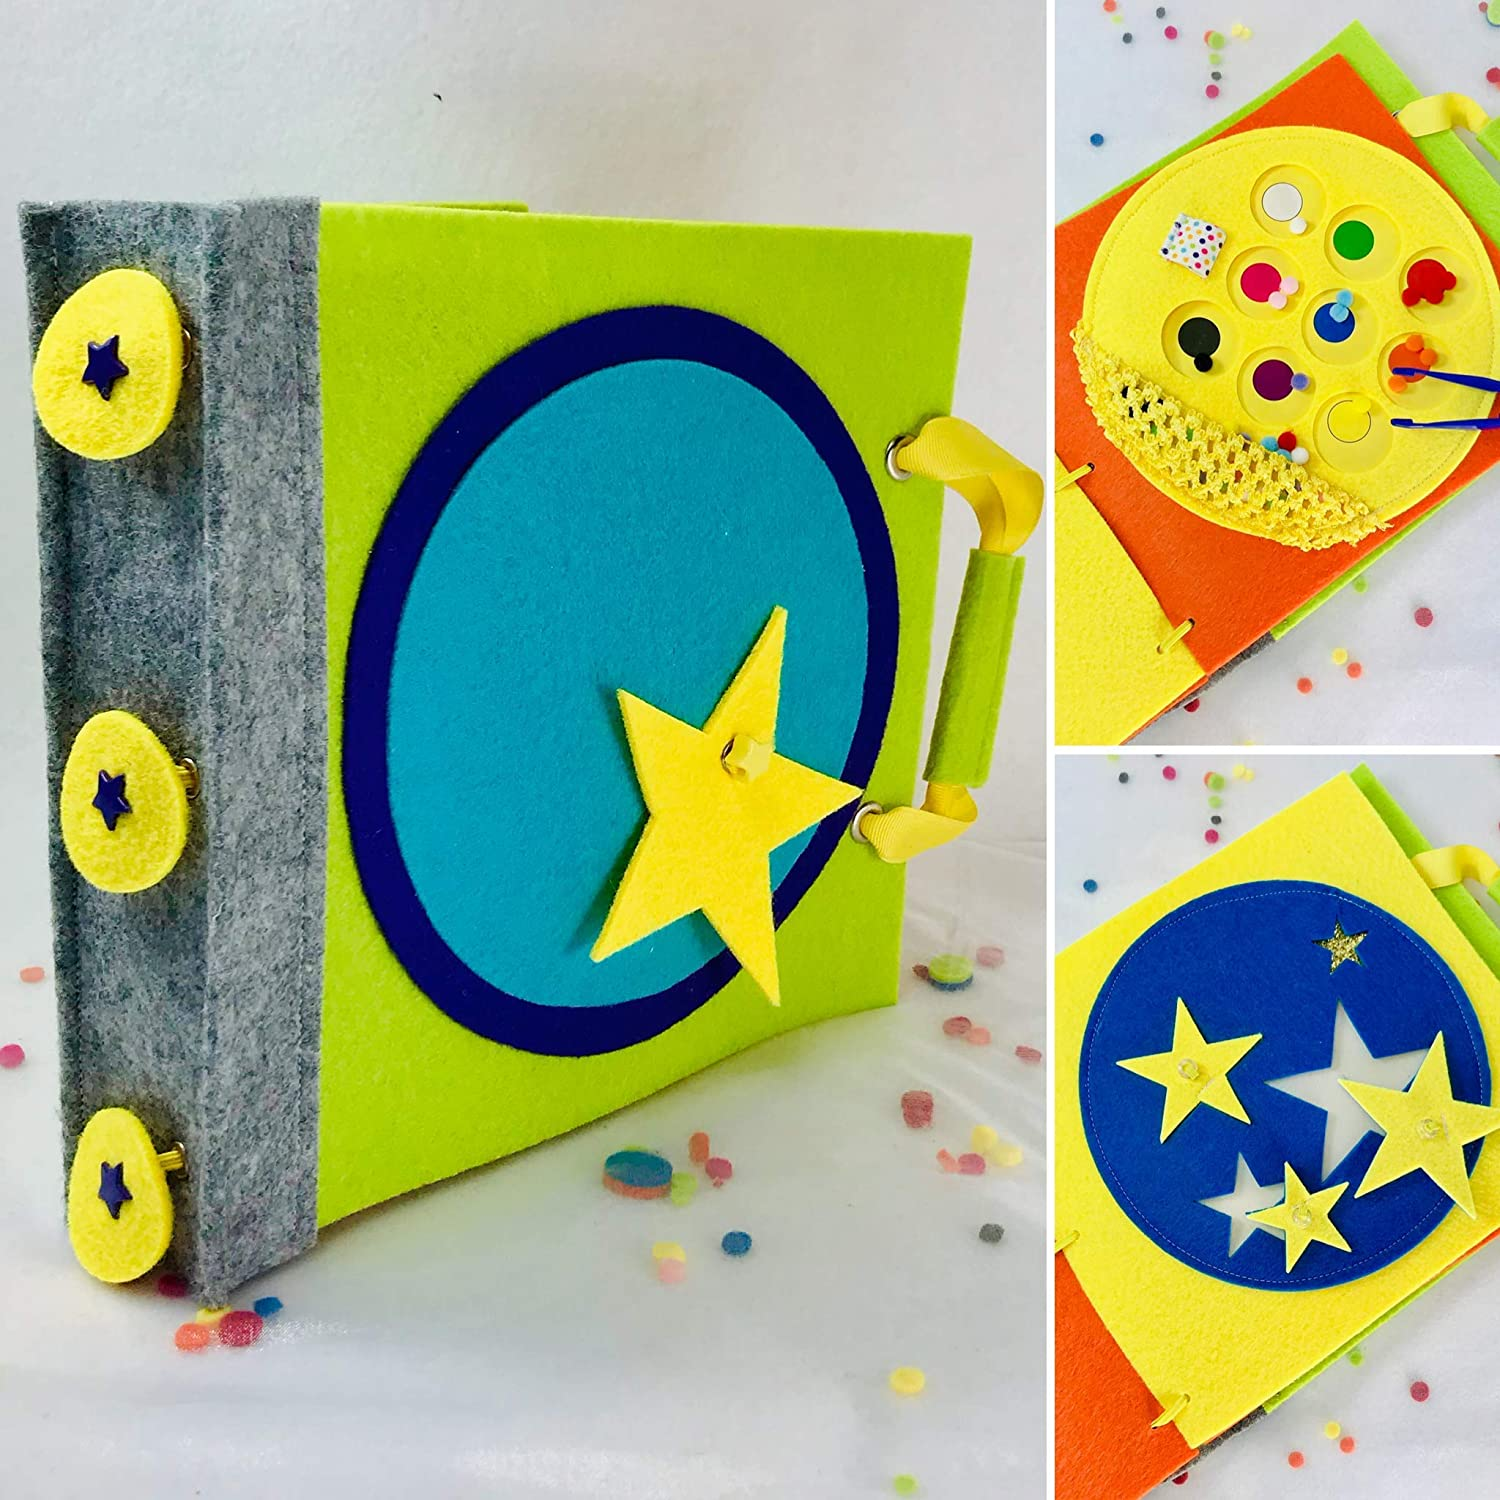 Felt Busy Book Gift Set for 2 Year Old TinyFeats Handmade Quiet Book for Toddler Features Montessori Activities